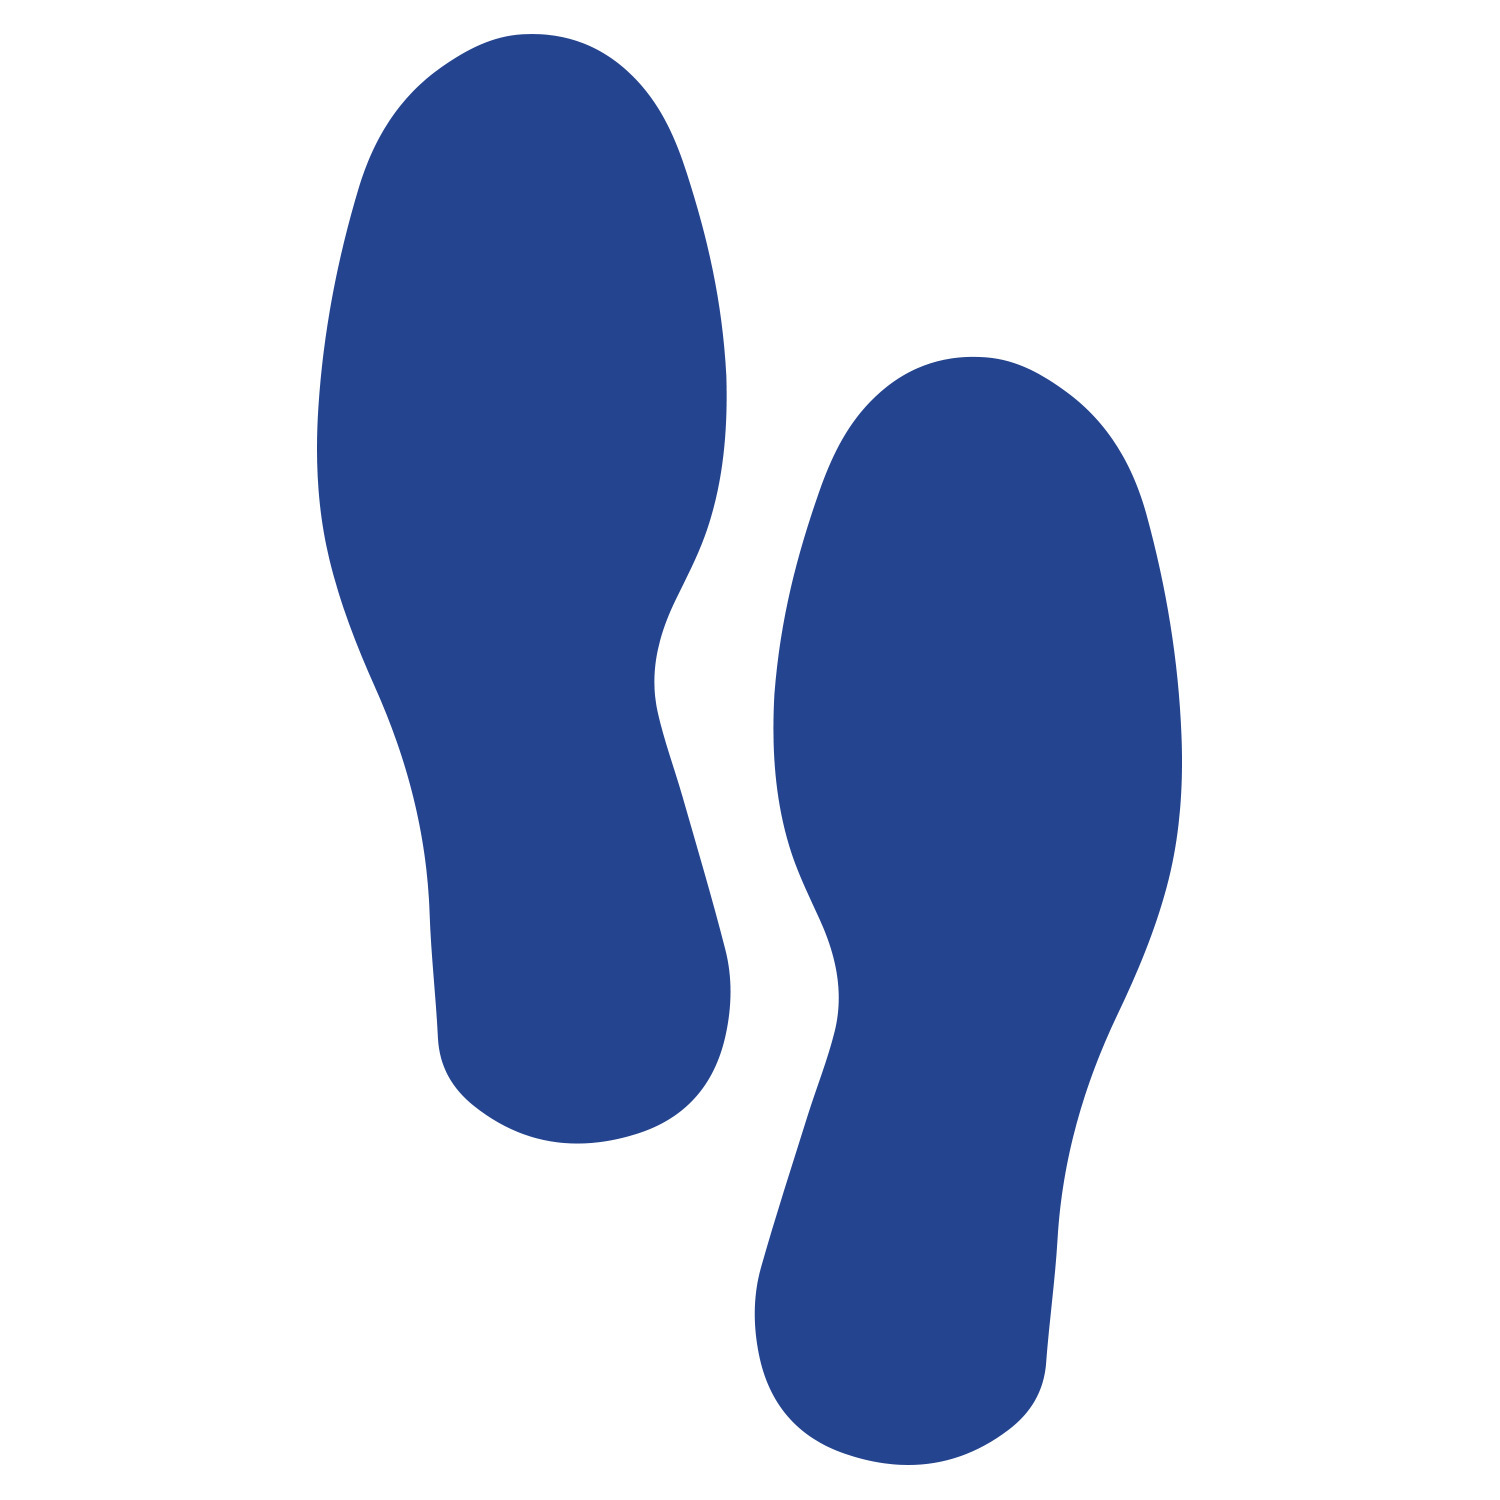 Primary image for LiteMark Medium Size Blue Removable Footprint Decals - Pack of 12 (6 Pairs)